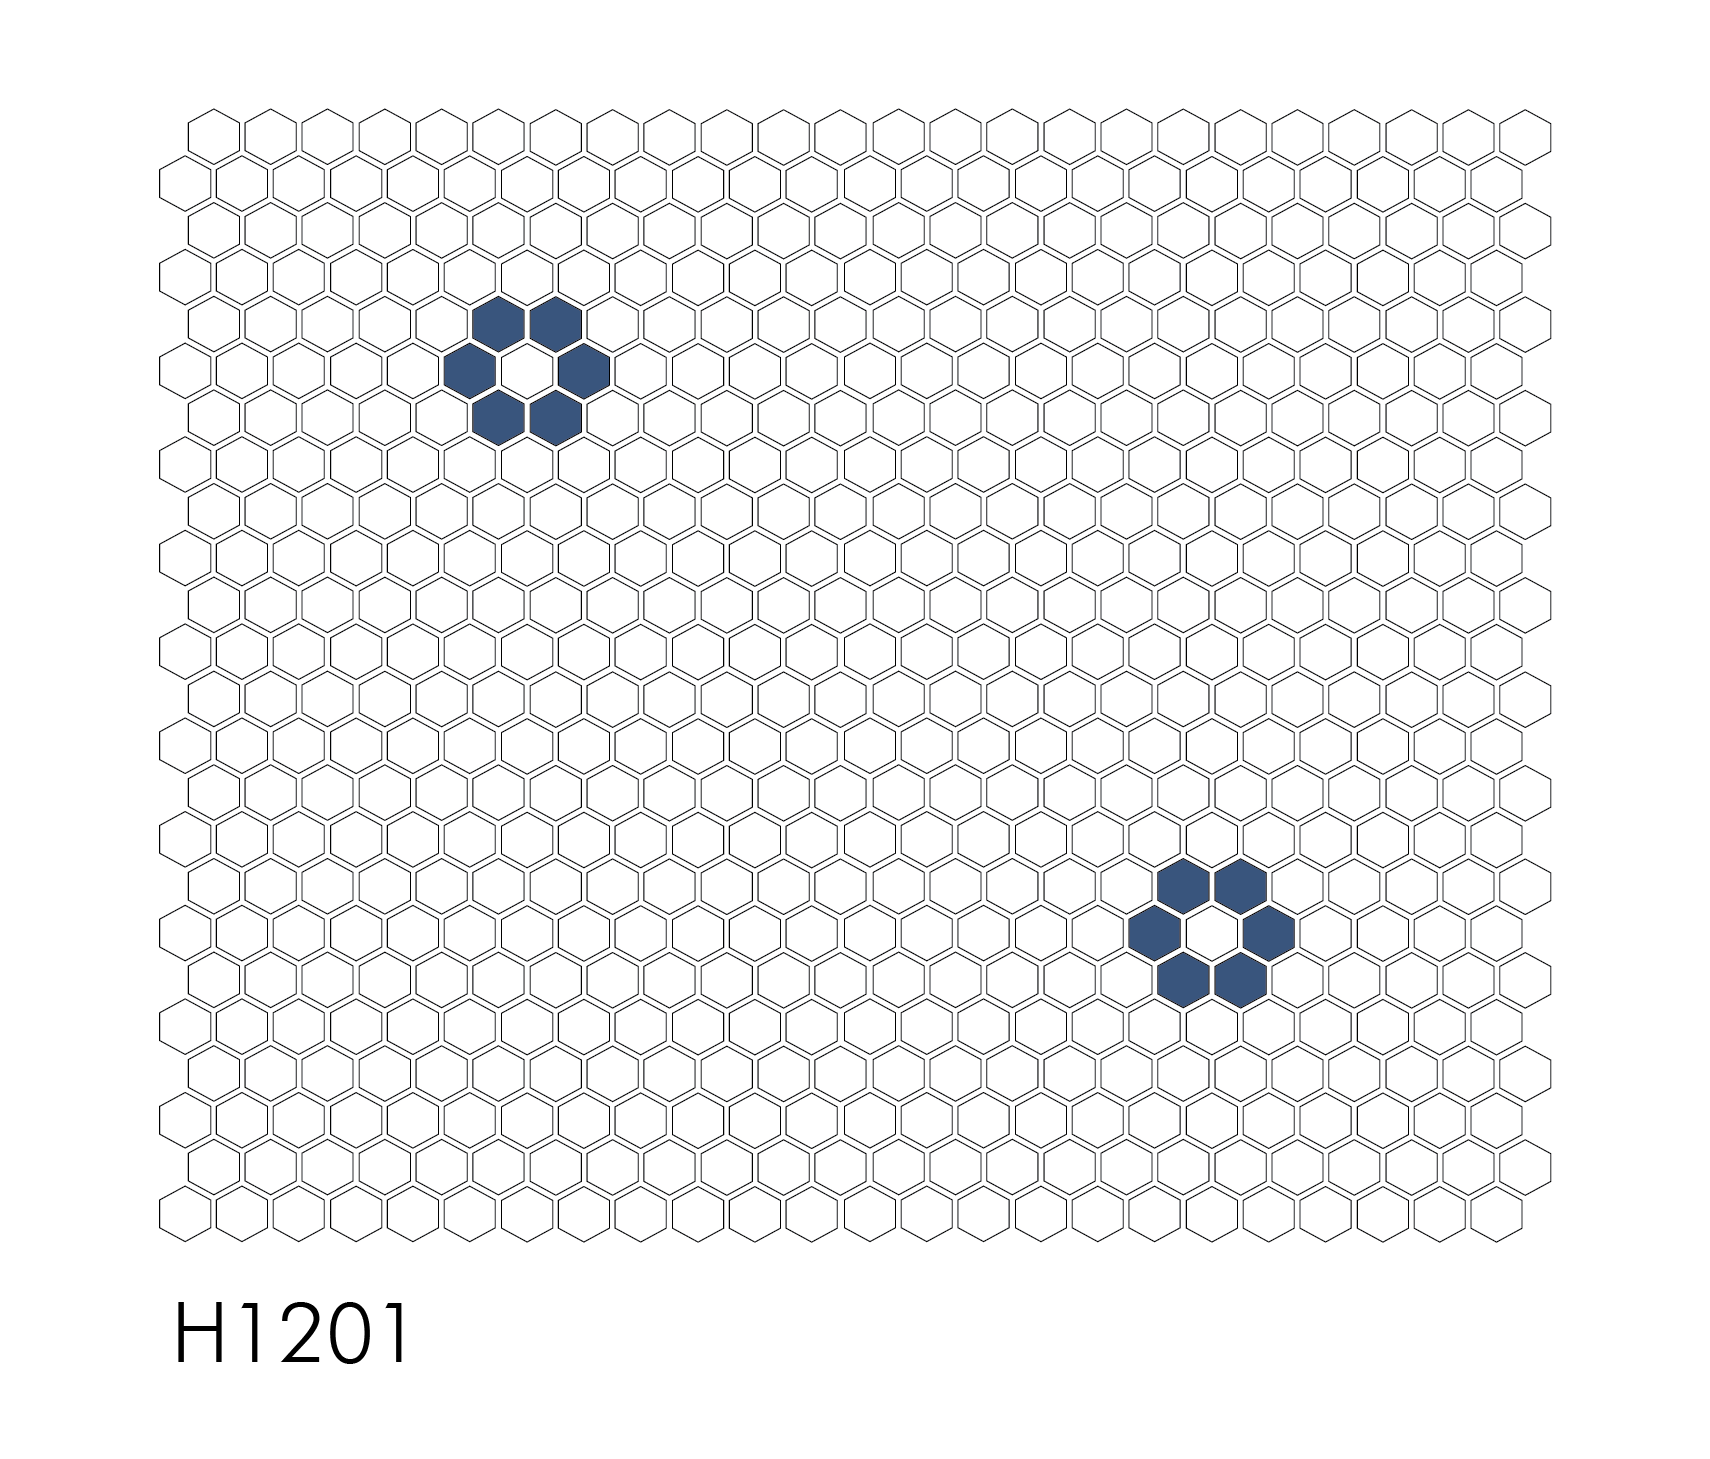 "H1201 Single Rosette 1"" Hexagon Mosaic"